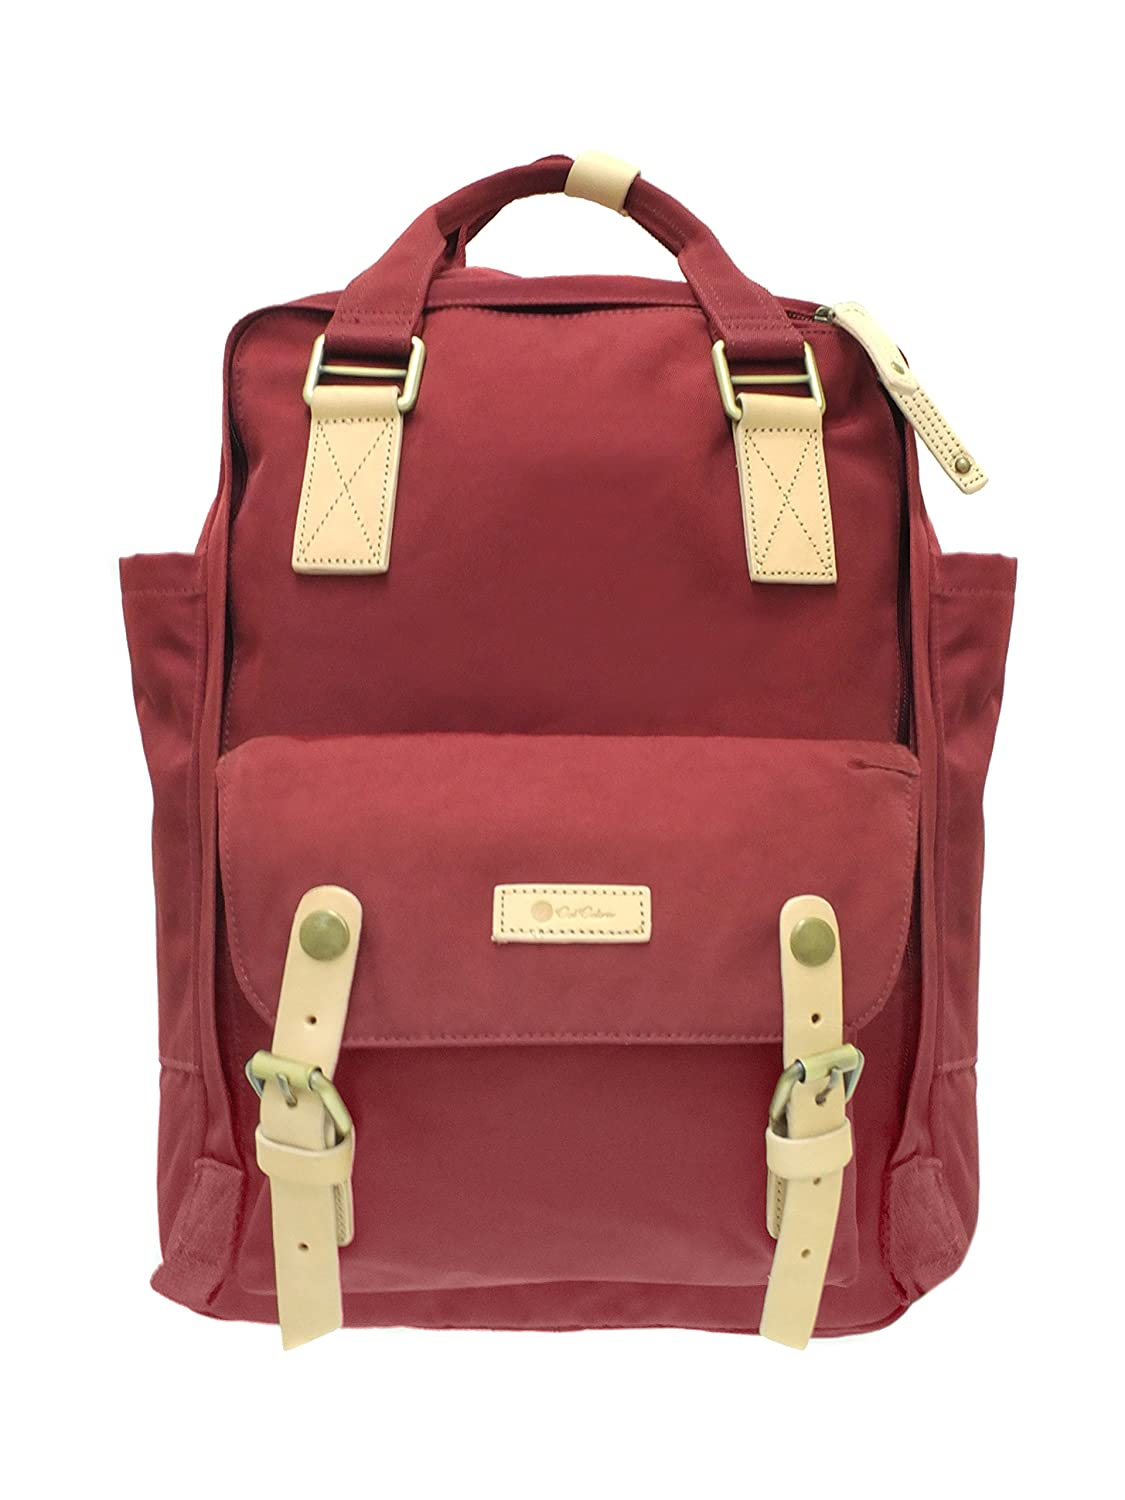 CalLife Stylish Solid Color Women Backpack for School 5b283d8f25248